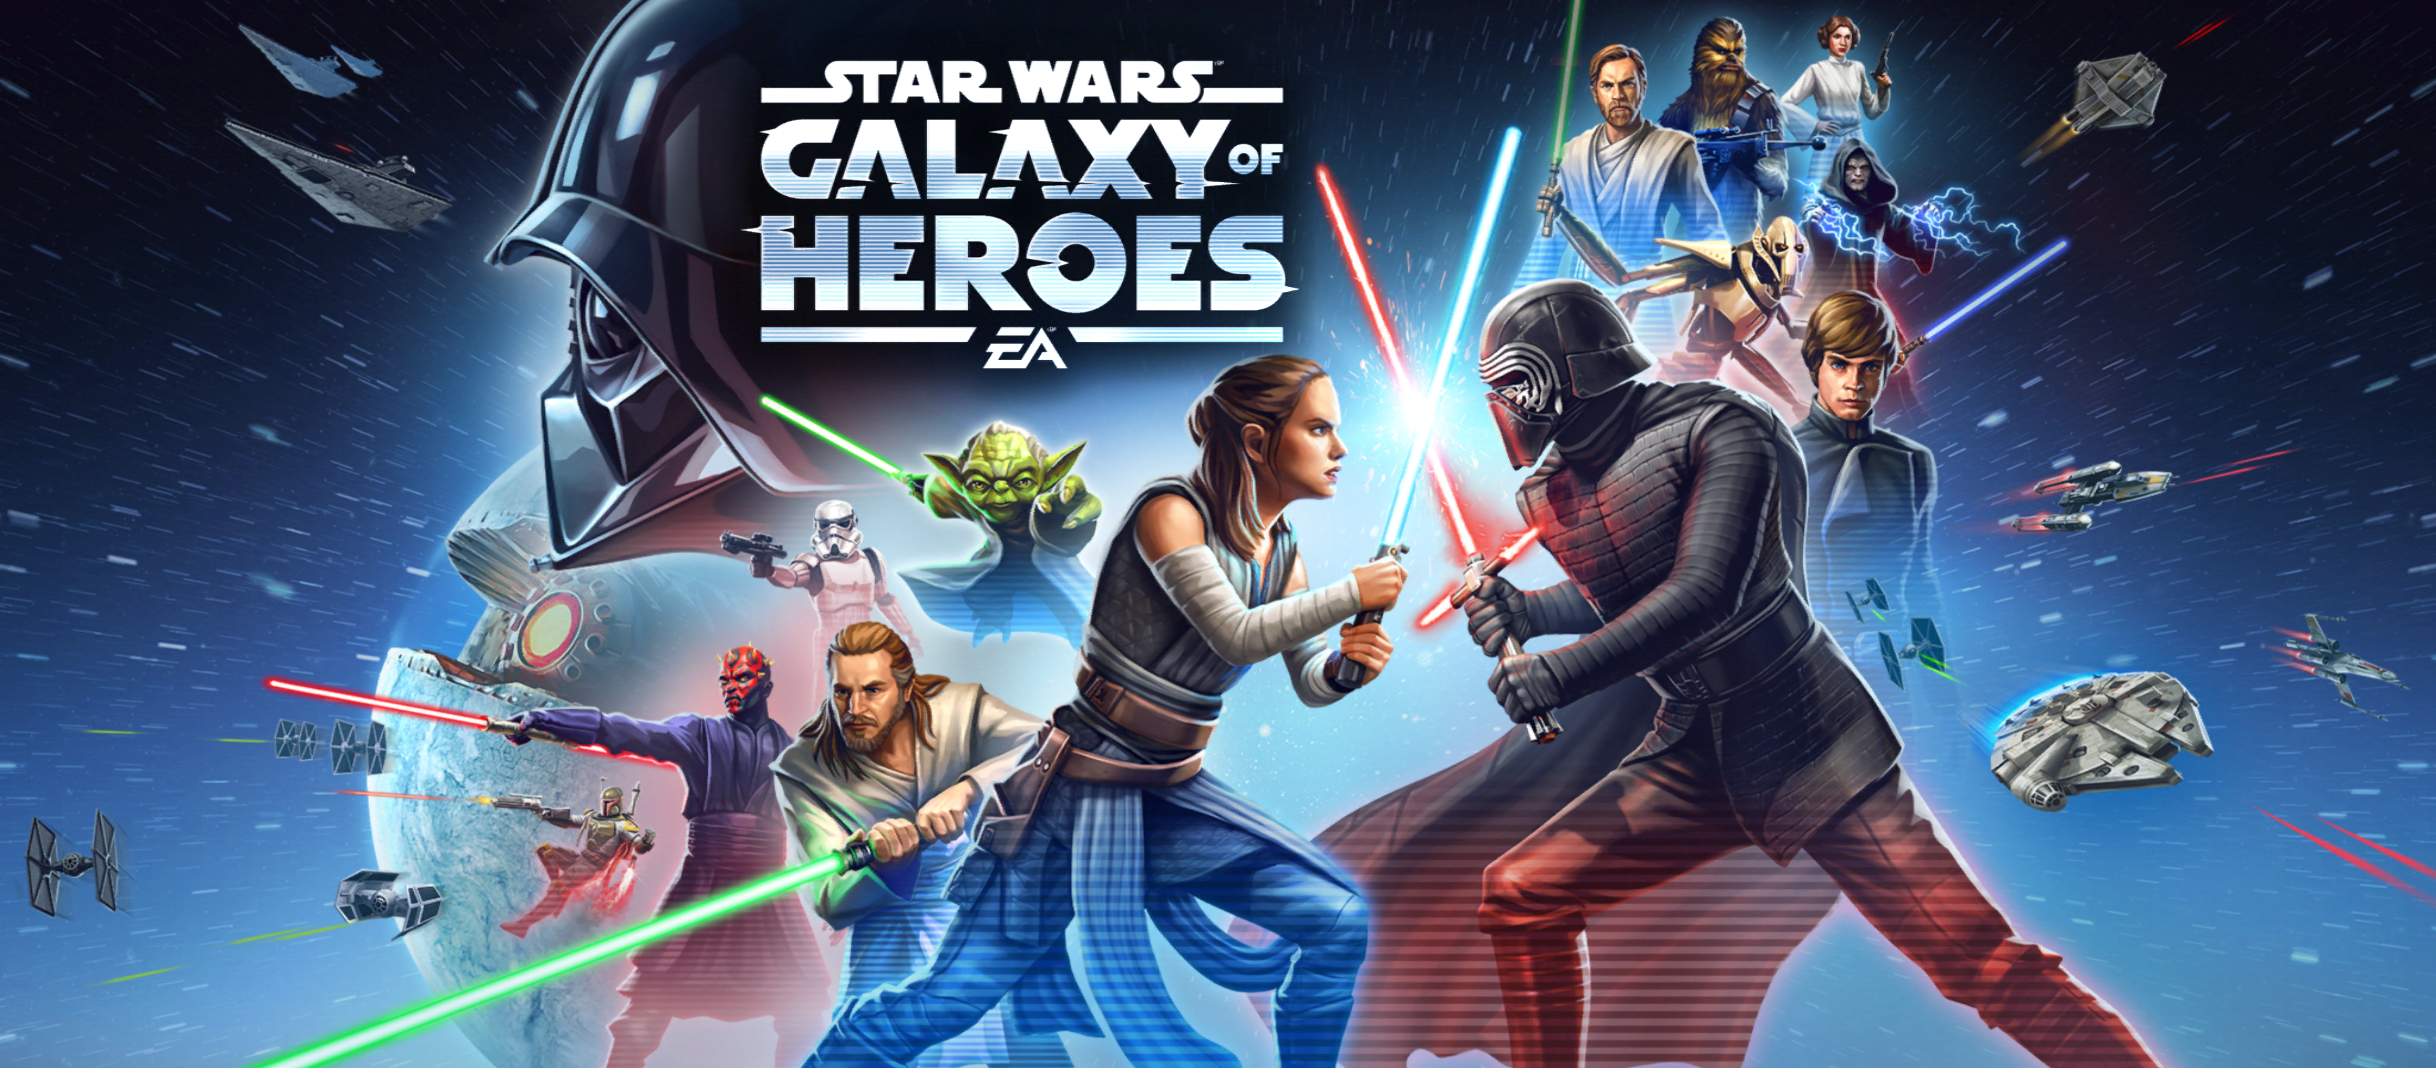 Star Wars: Galaxy of Heroes beginner's guide! – Star Wars Thoughts